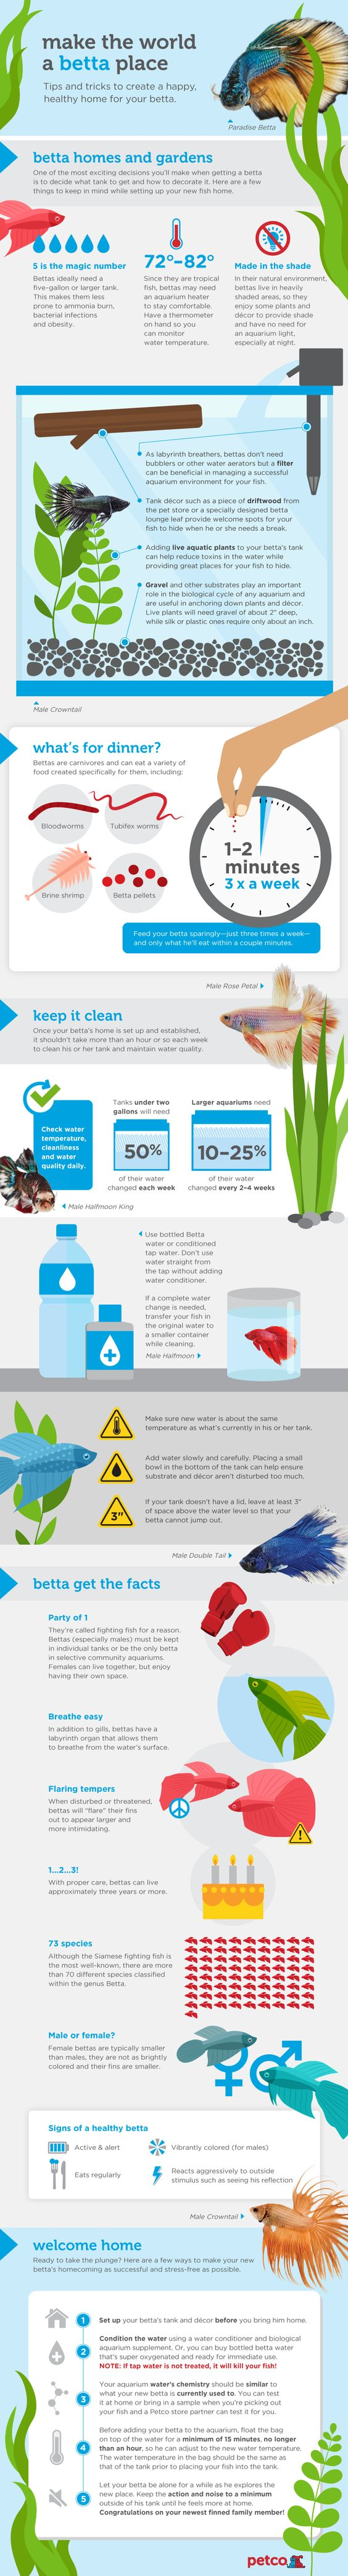 There's a reason people of all types love bettas. Sometimes called Siamese fighting fish, these feisty fish pack a lot of personality into a very small package and make great pets for almost every living situation. You'll find them right at home on a desk at the office, enhancing the look of a livin...